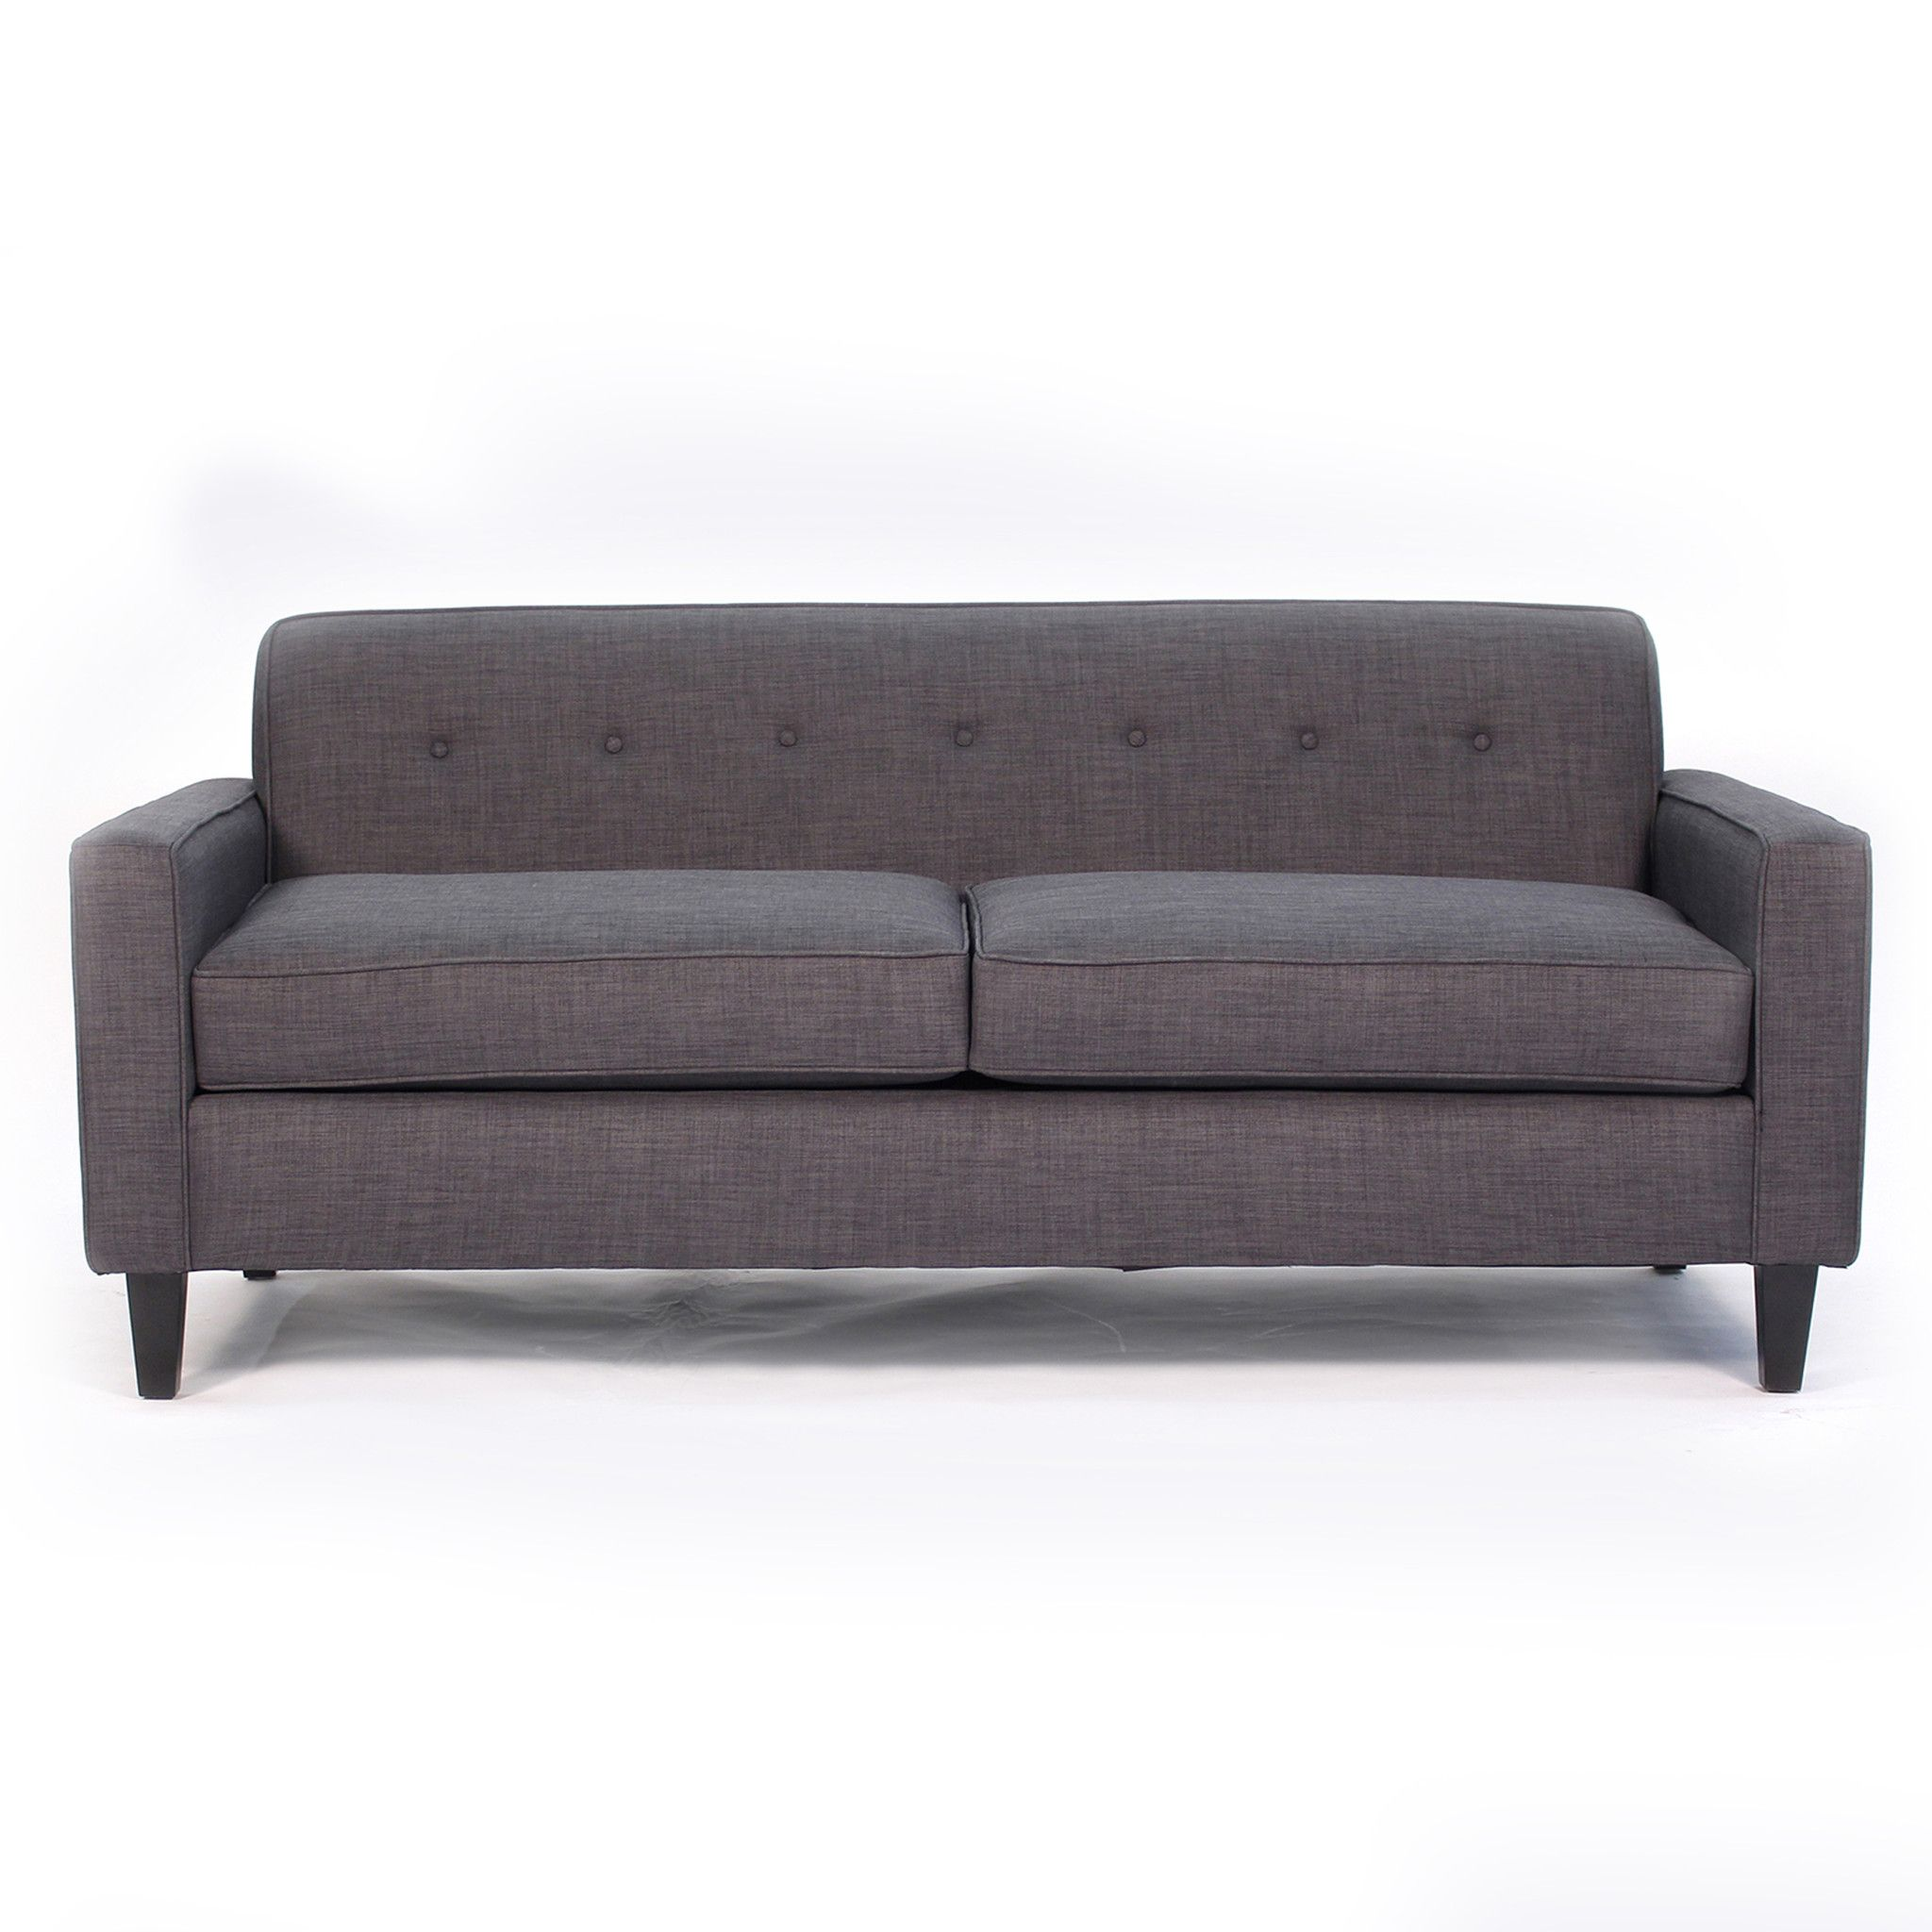 The Soho Mid Century Modern Apt Size Sofa Is Sleek Neat And